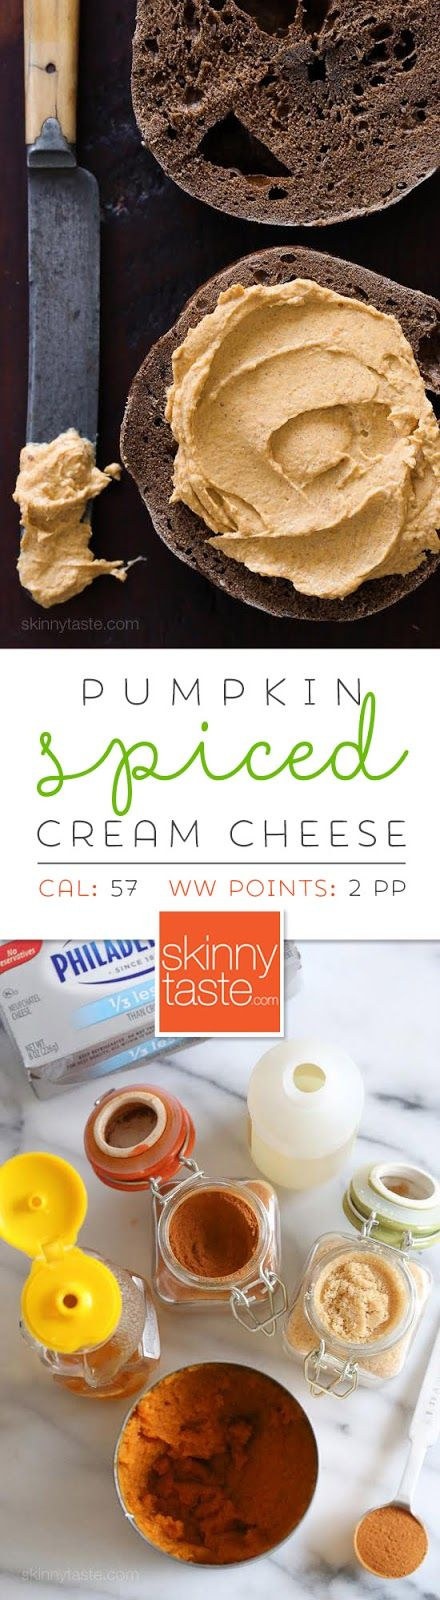 Pumpkin Spiced Cream Cheese – an easy way to enjoy a taste of pumpkin cheesecake for breakfast!